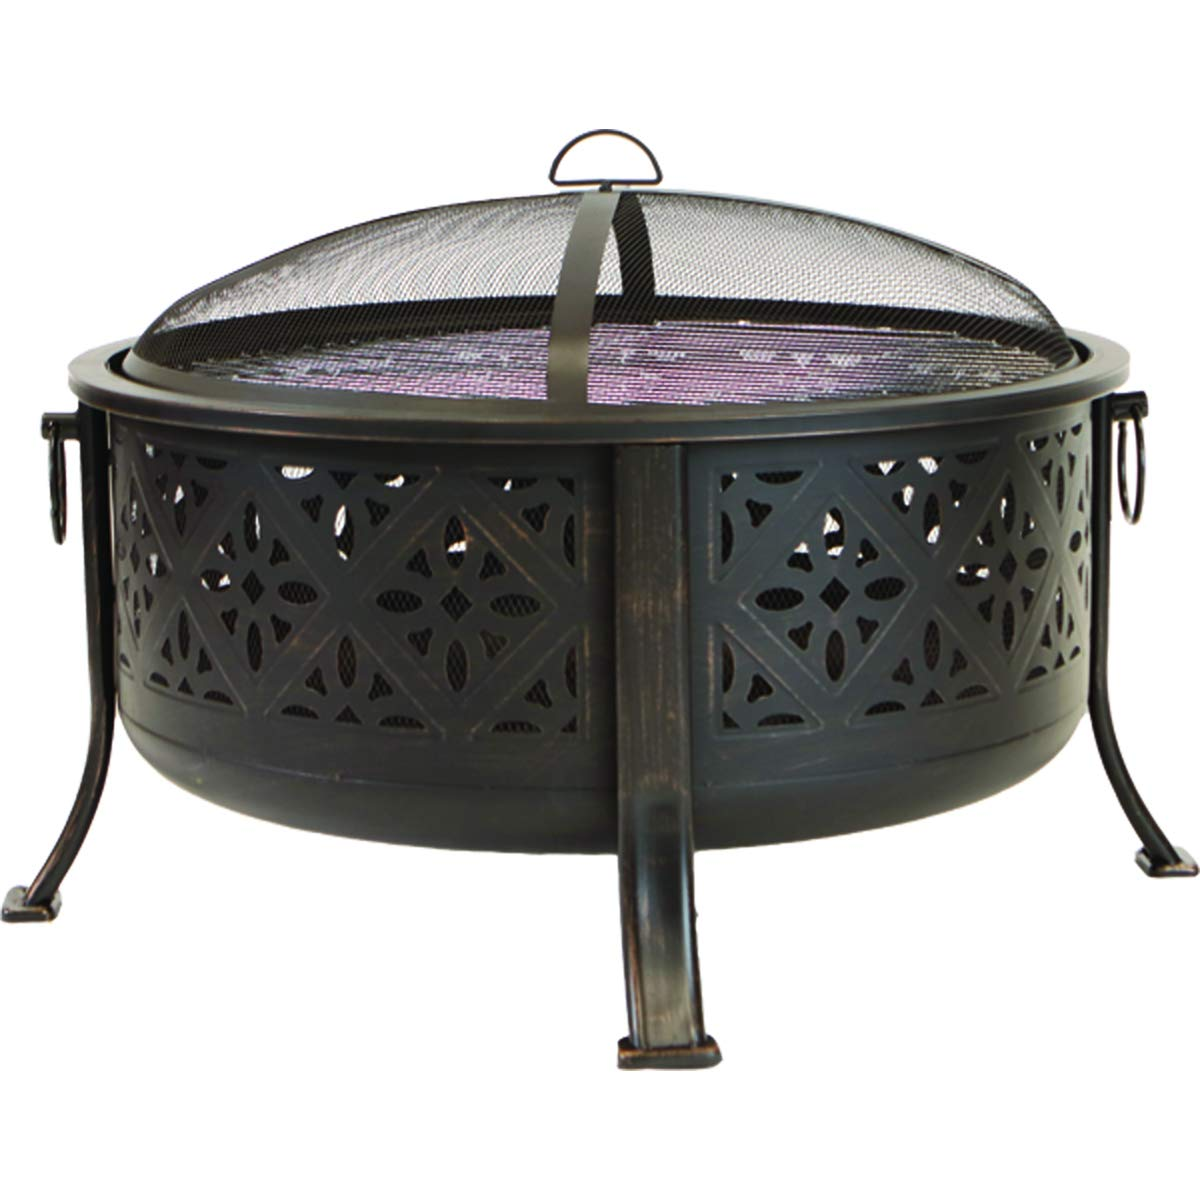 ISO Fire Pit – 34 Round Bowl and BBQ, Includes Grate, Mesh Cover, Poker